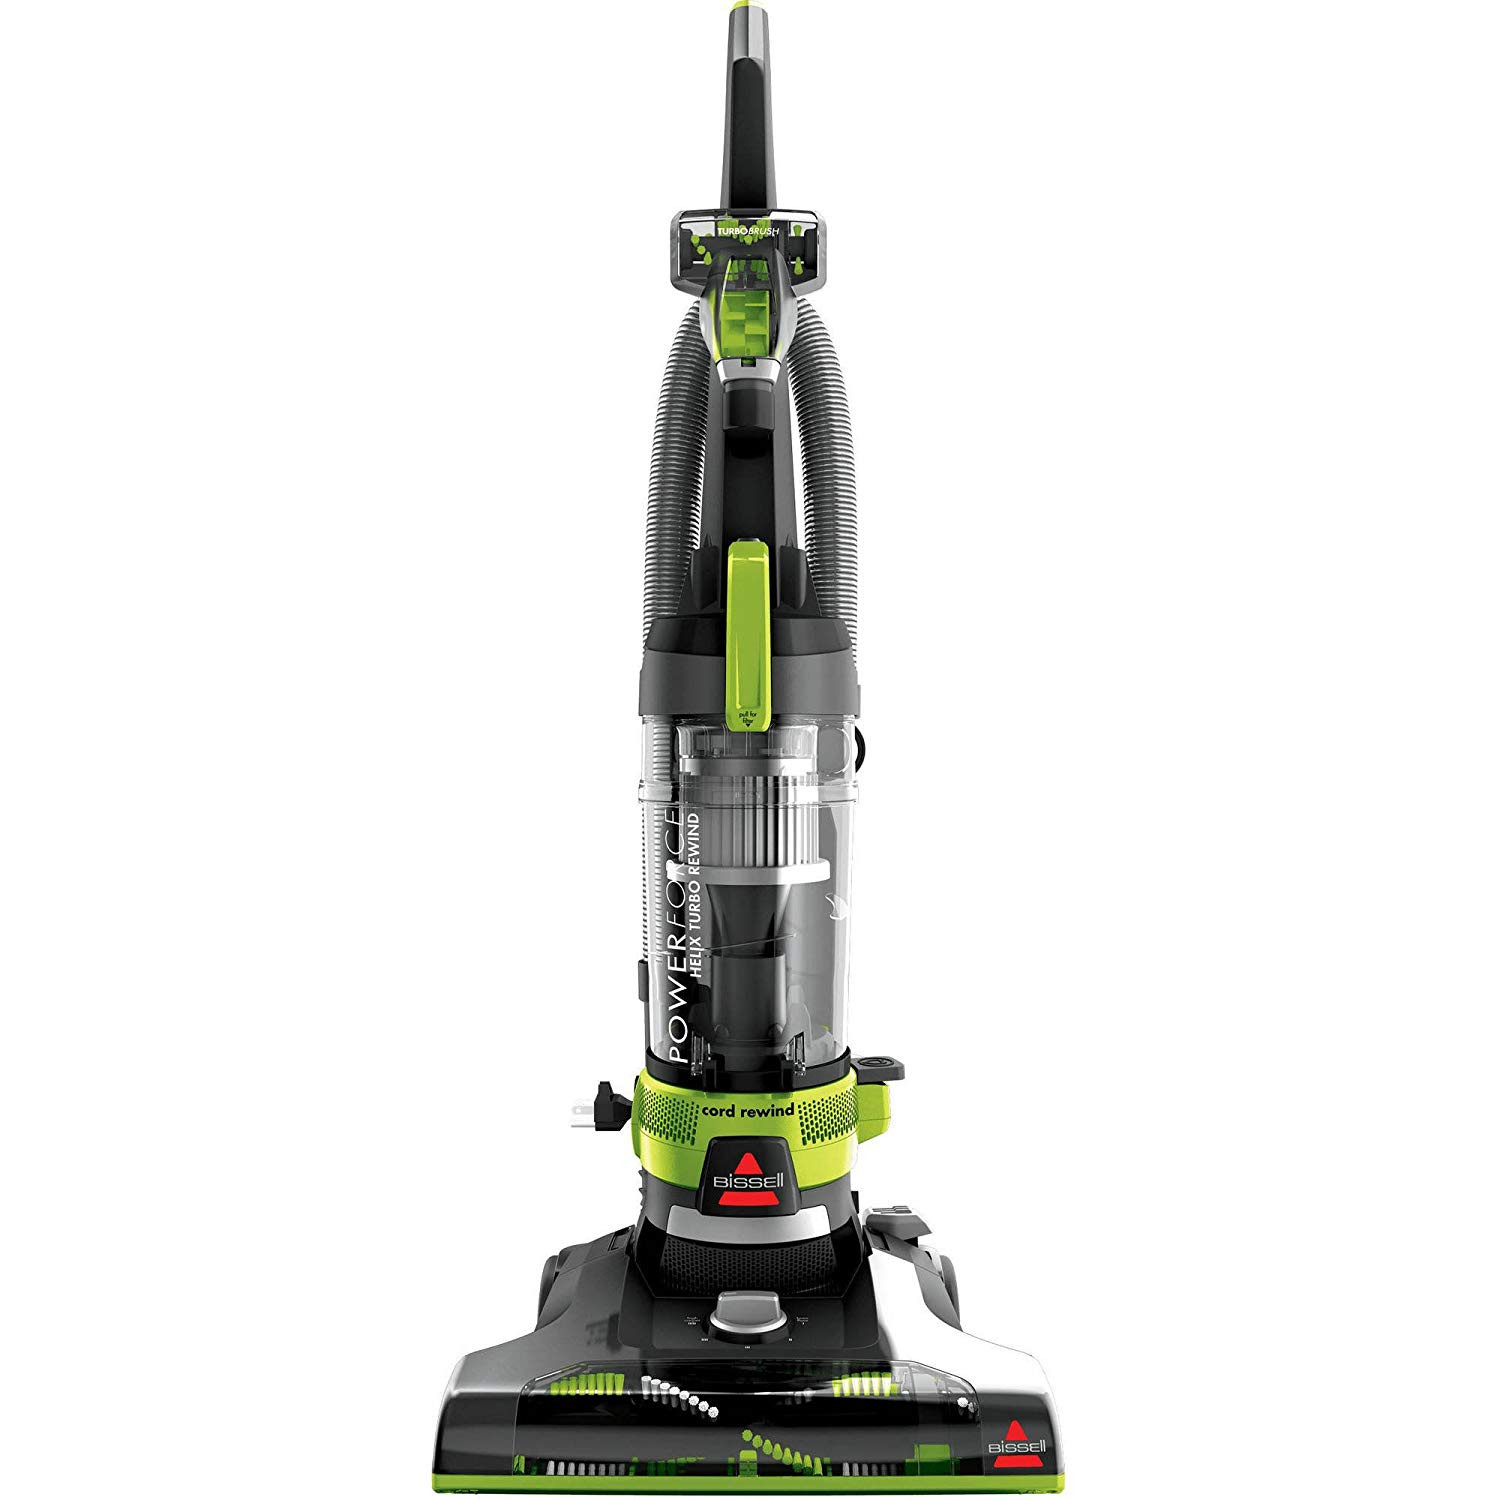 bissell hardwood floor expert vacuum of amazon com bissell powerforce helix turbo rewind corded bagless for amazon com bissell powerforce helix turbo rewind corded bagless upright vacuum with free lysol all purpose cleaner 32 ounce